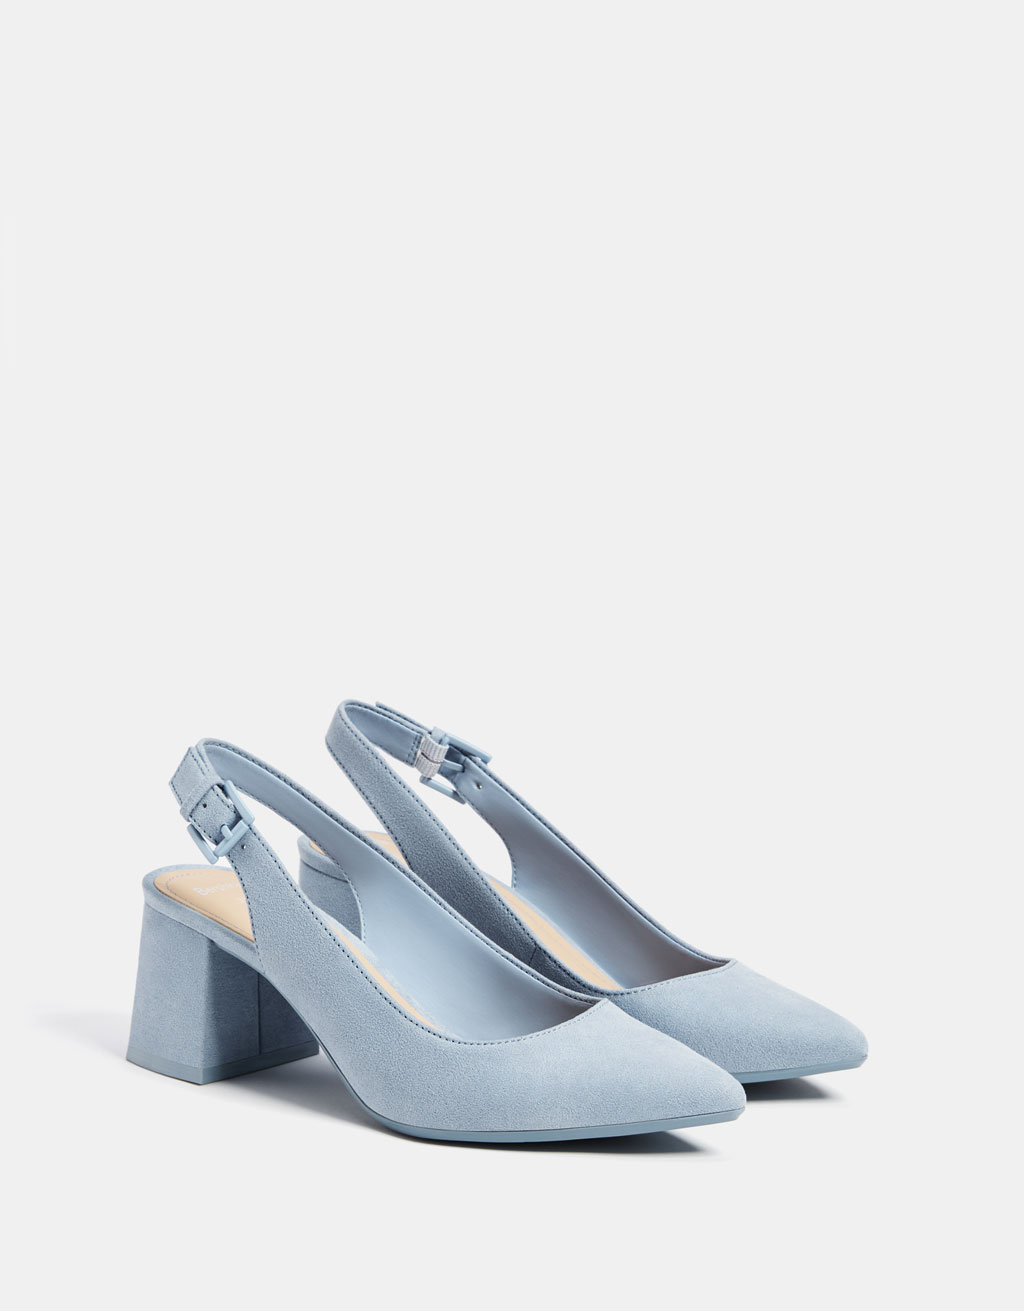 Blue slingback high heel shoes